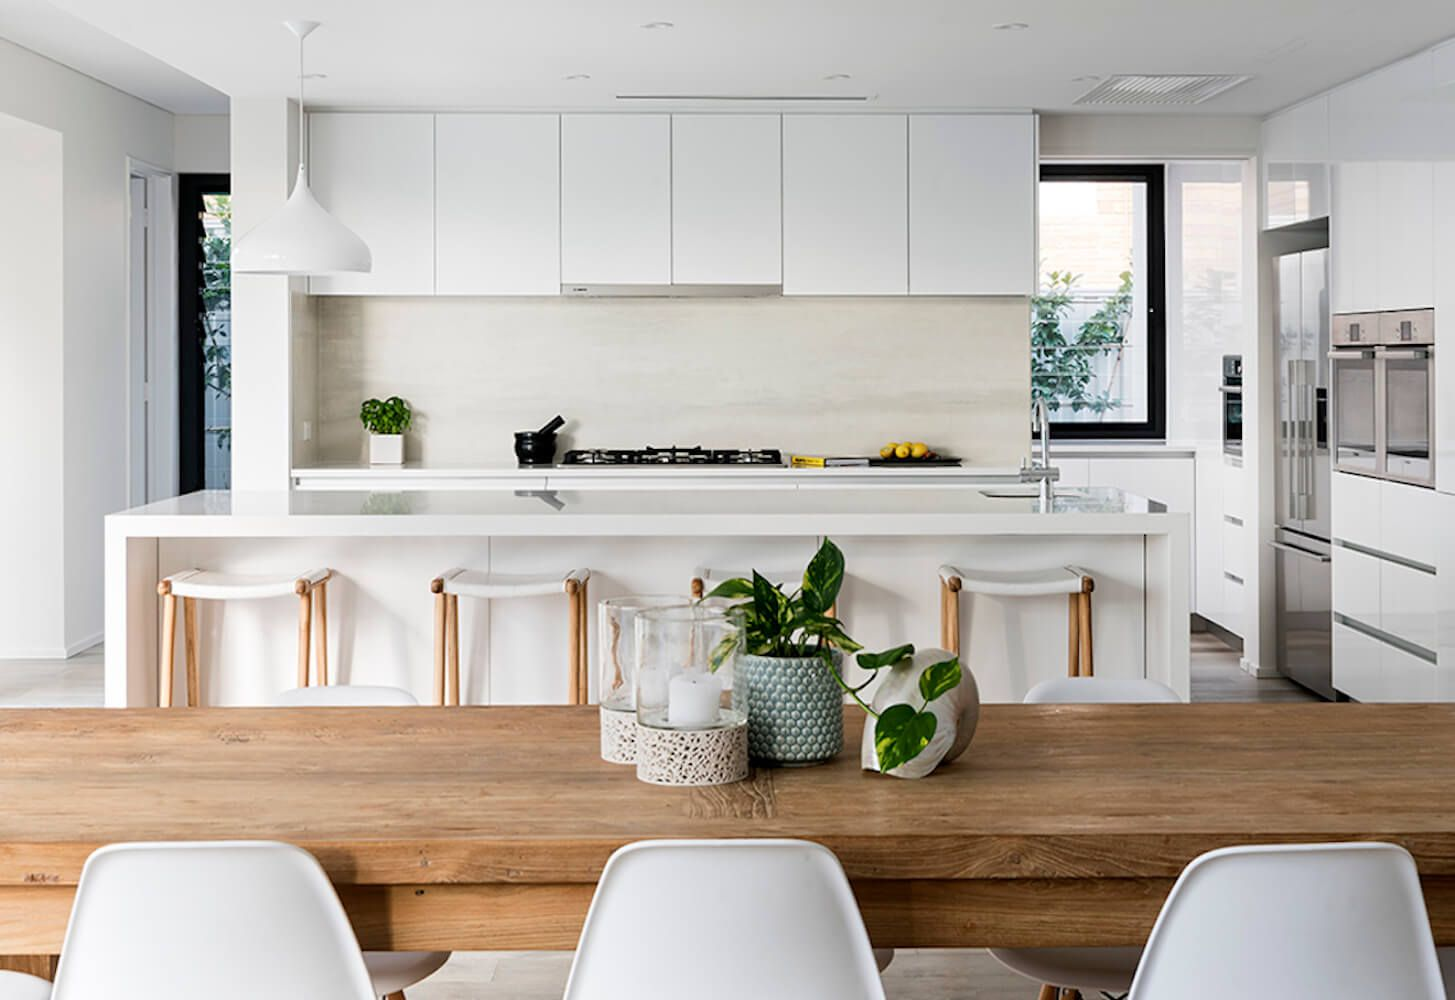 sorrento oswald homes luxury home builders perth home